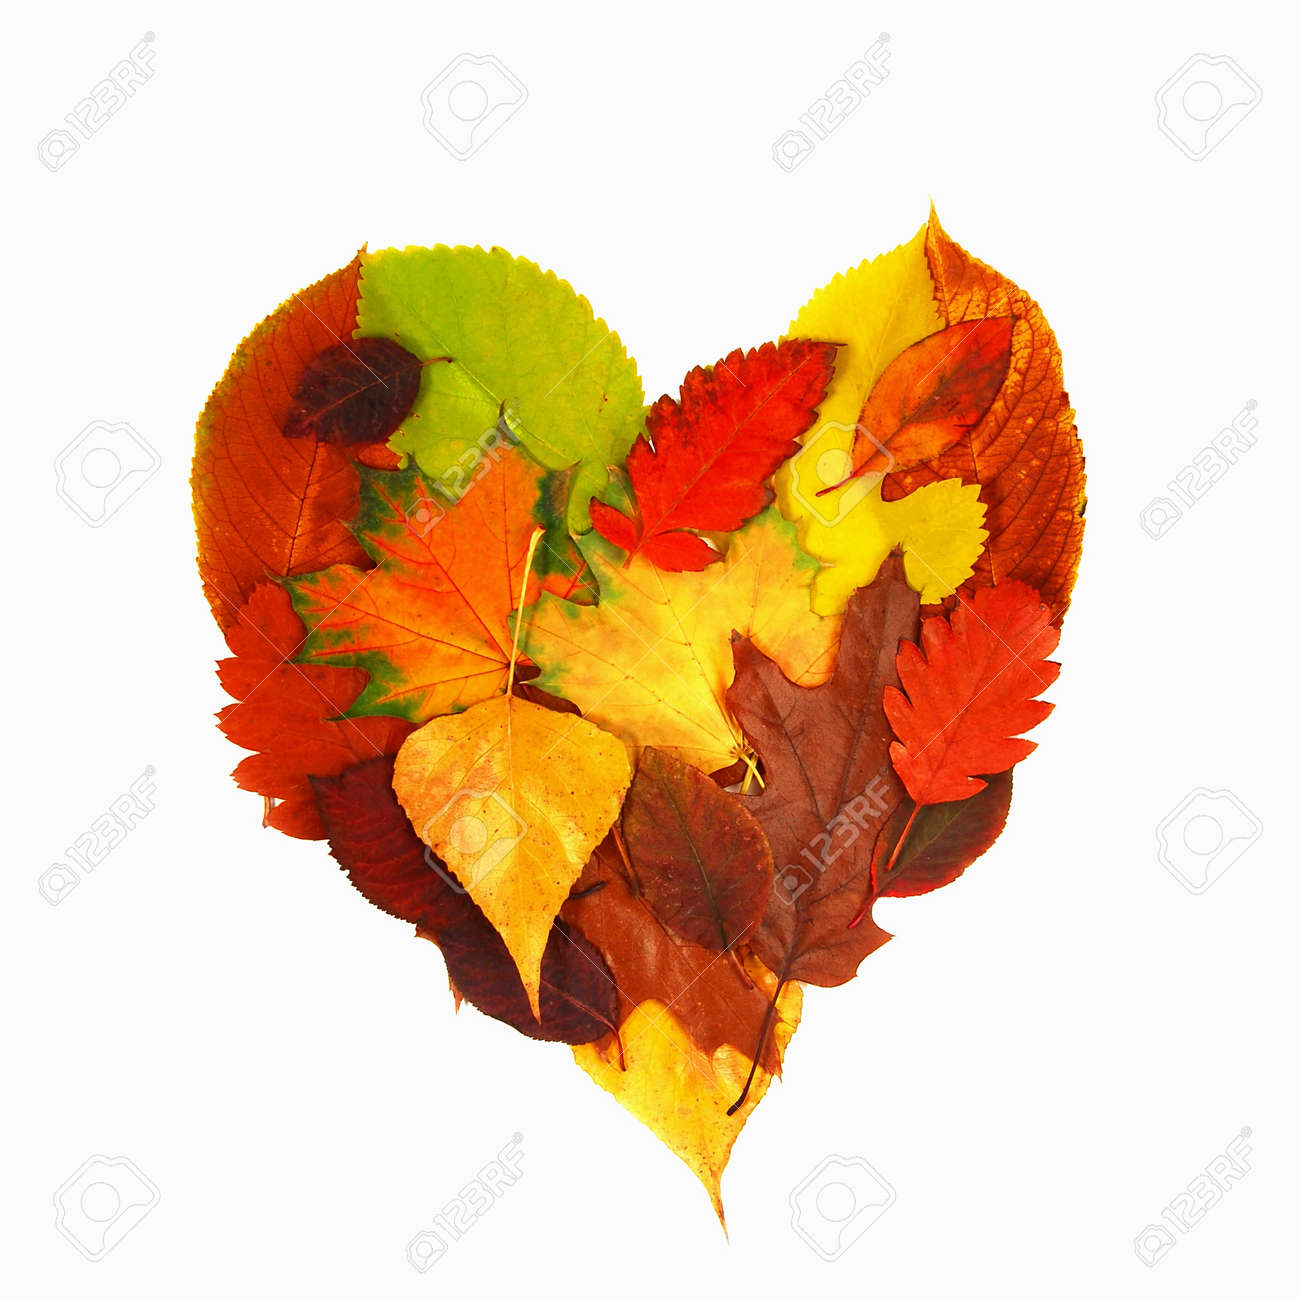 various bright colorful autumn tree leaves in heart shape over white background - 14351692